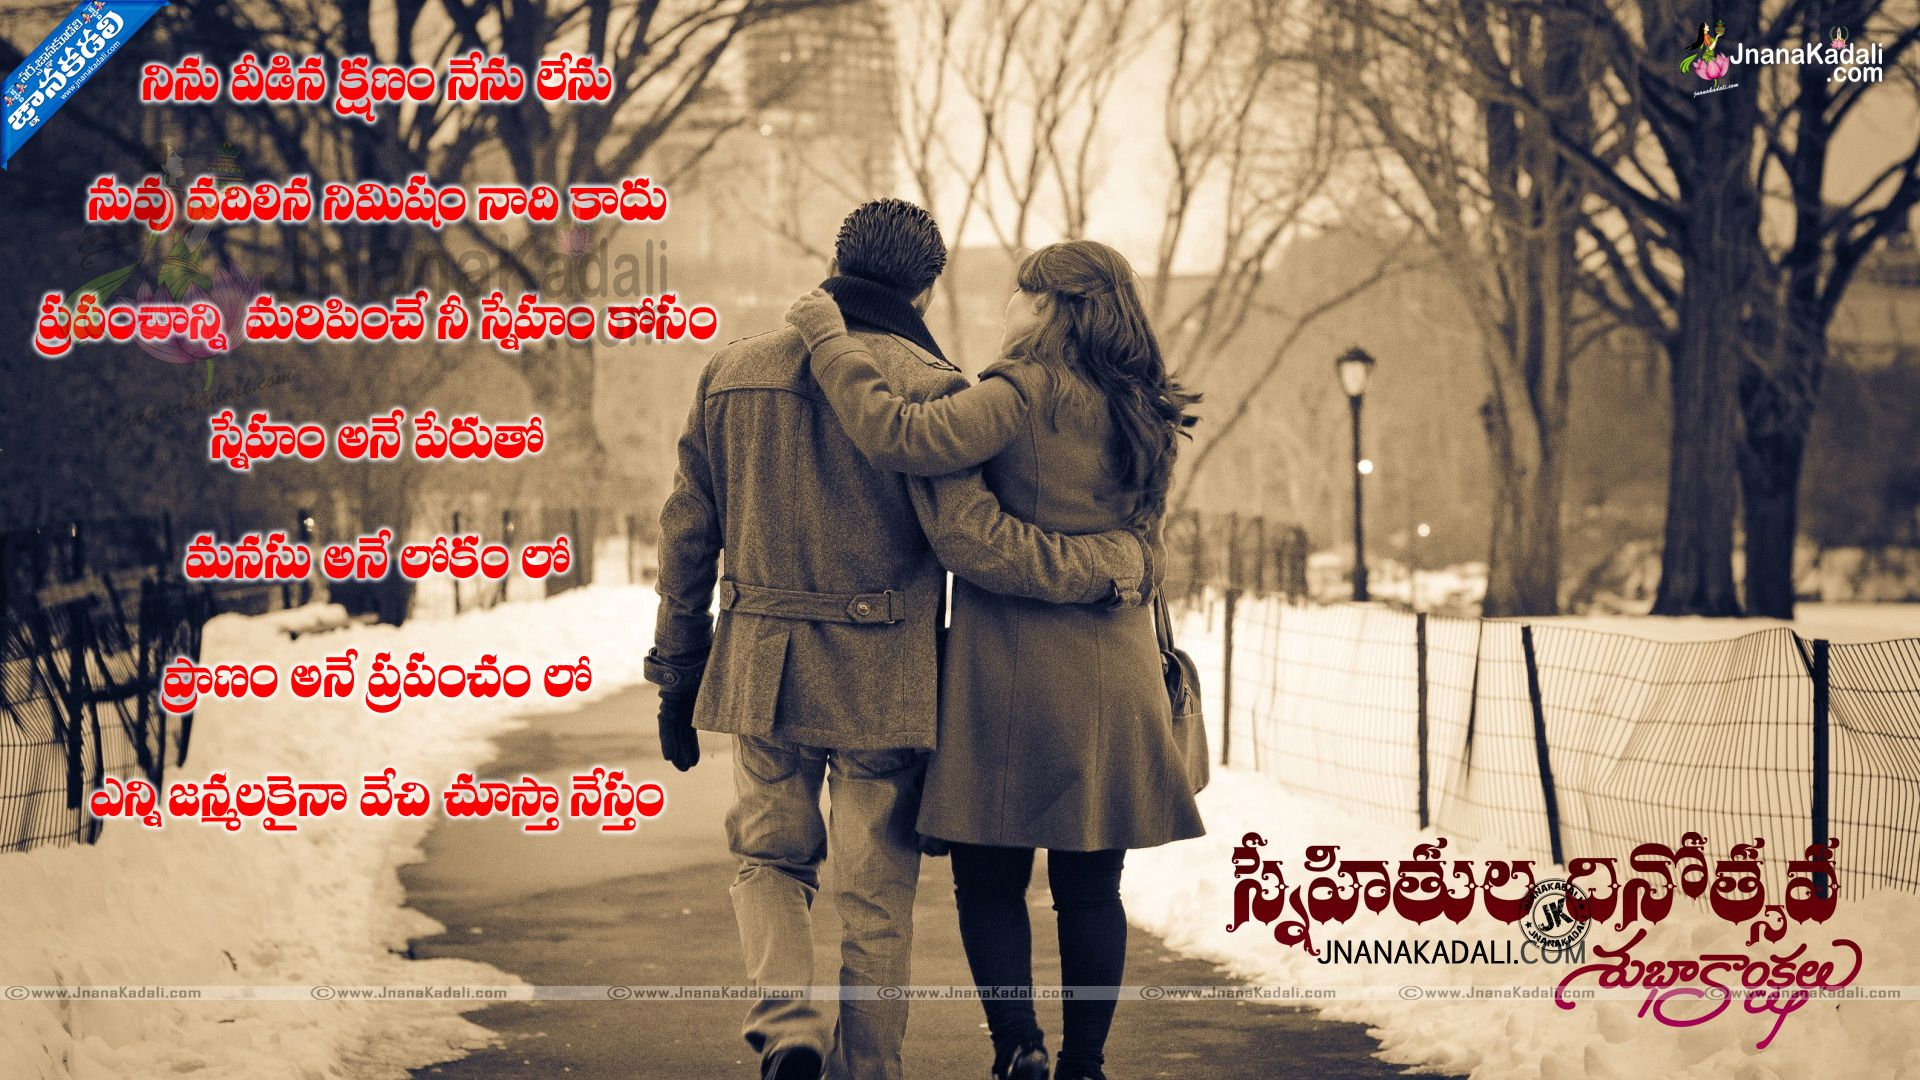 Friendship day telugu quotes wishes greetings images wallpapers friendship day telugu quotes wishes greetings images wallpapers pictures friendship day pictures in telugu friendship kristyandbryce Gallery